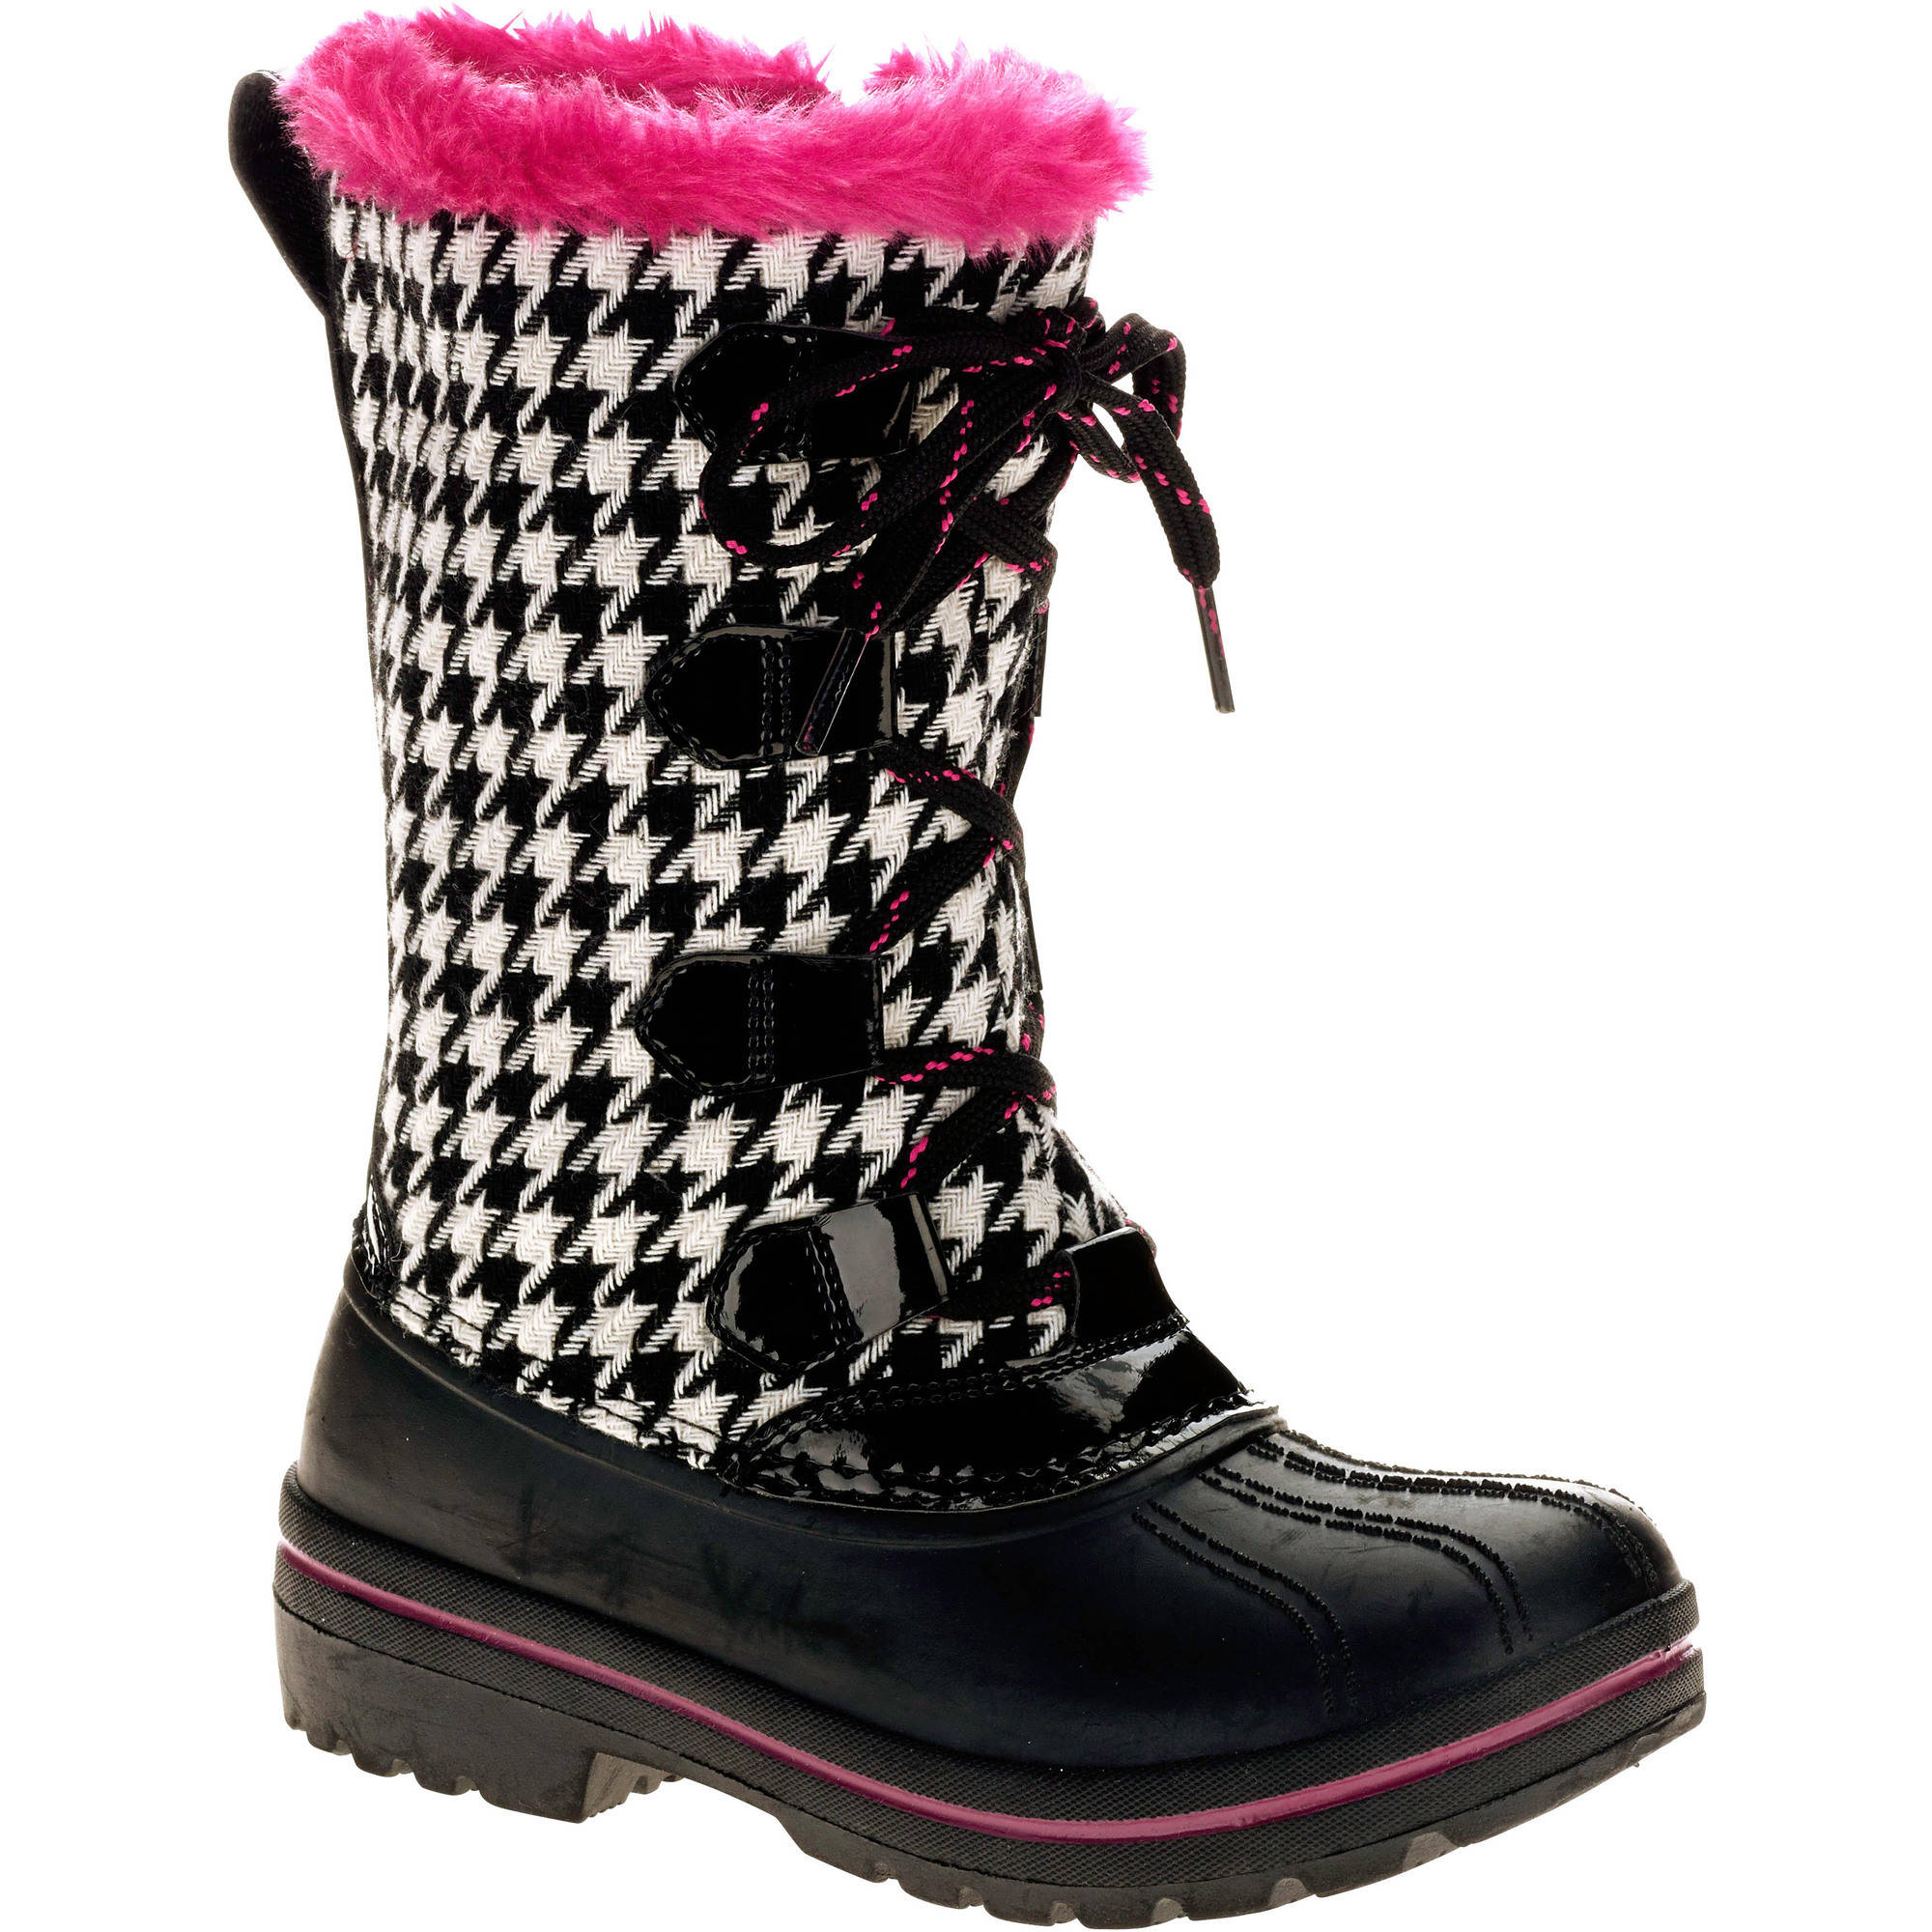 Ozark Trail Girls' Houndstooth Winter Boot - Walmart.com